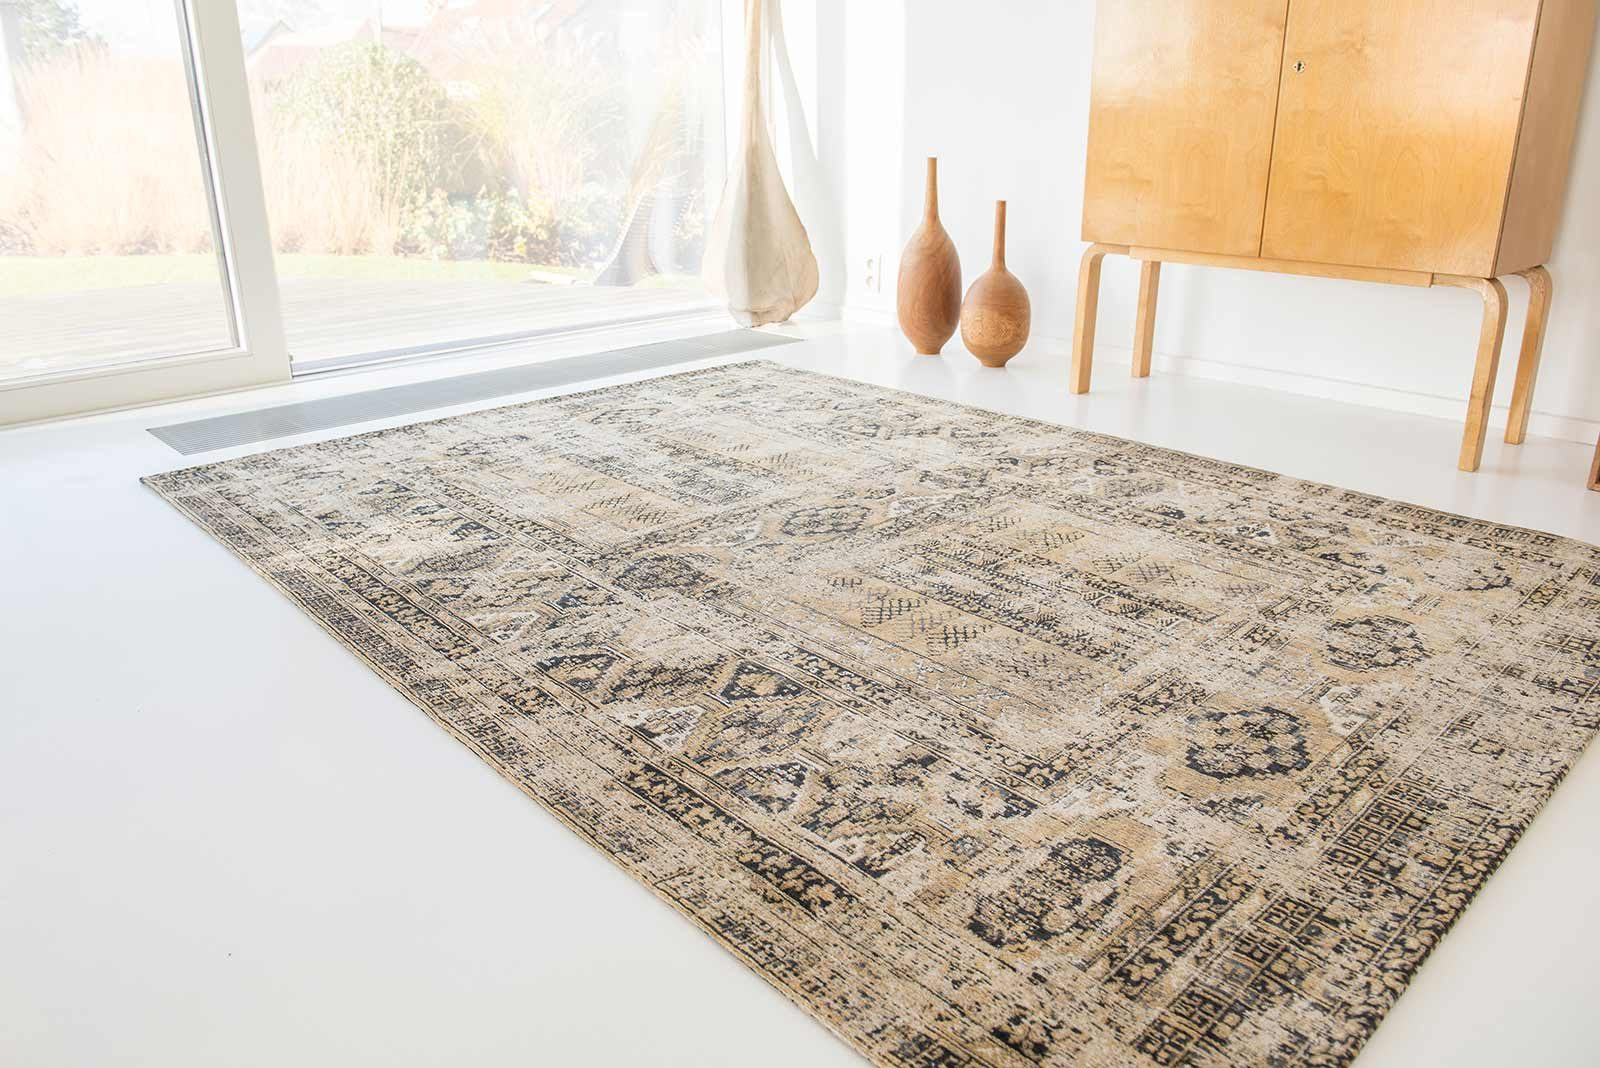 rugs Louis De Poortere LX8720 Antiquarian Antique Hadschlu Agha Old Gold interior